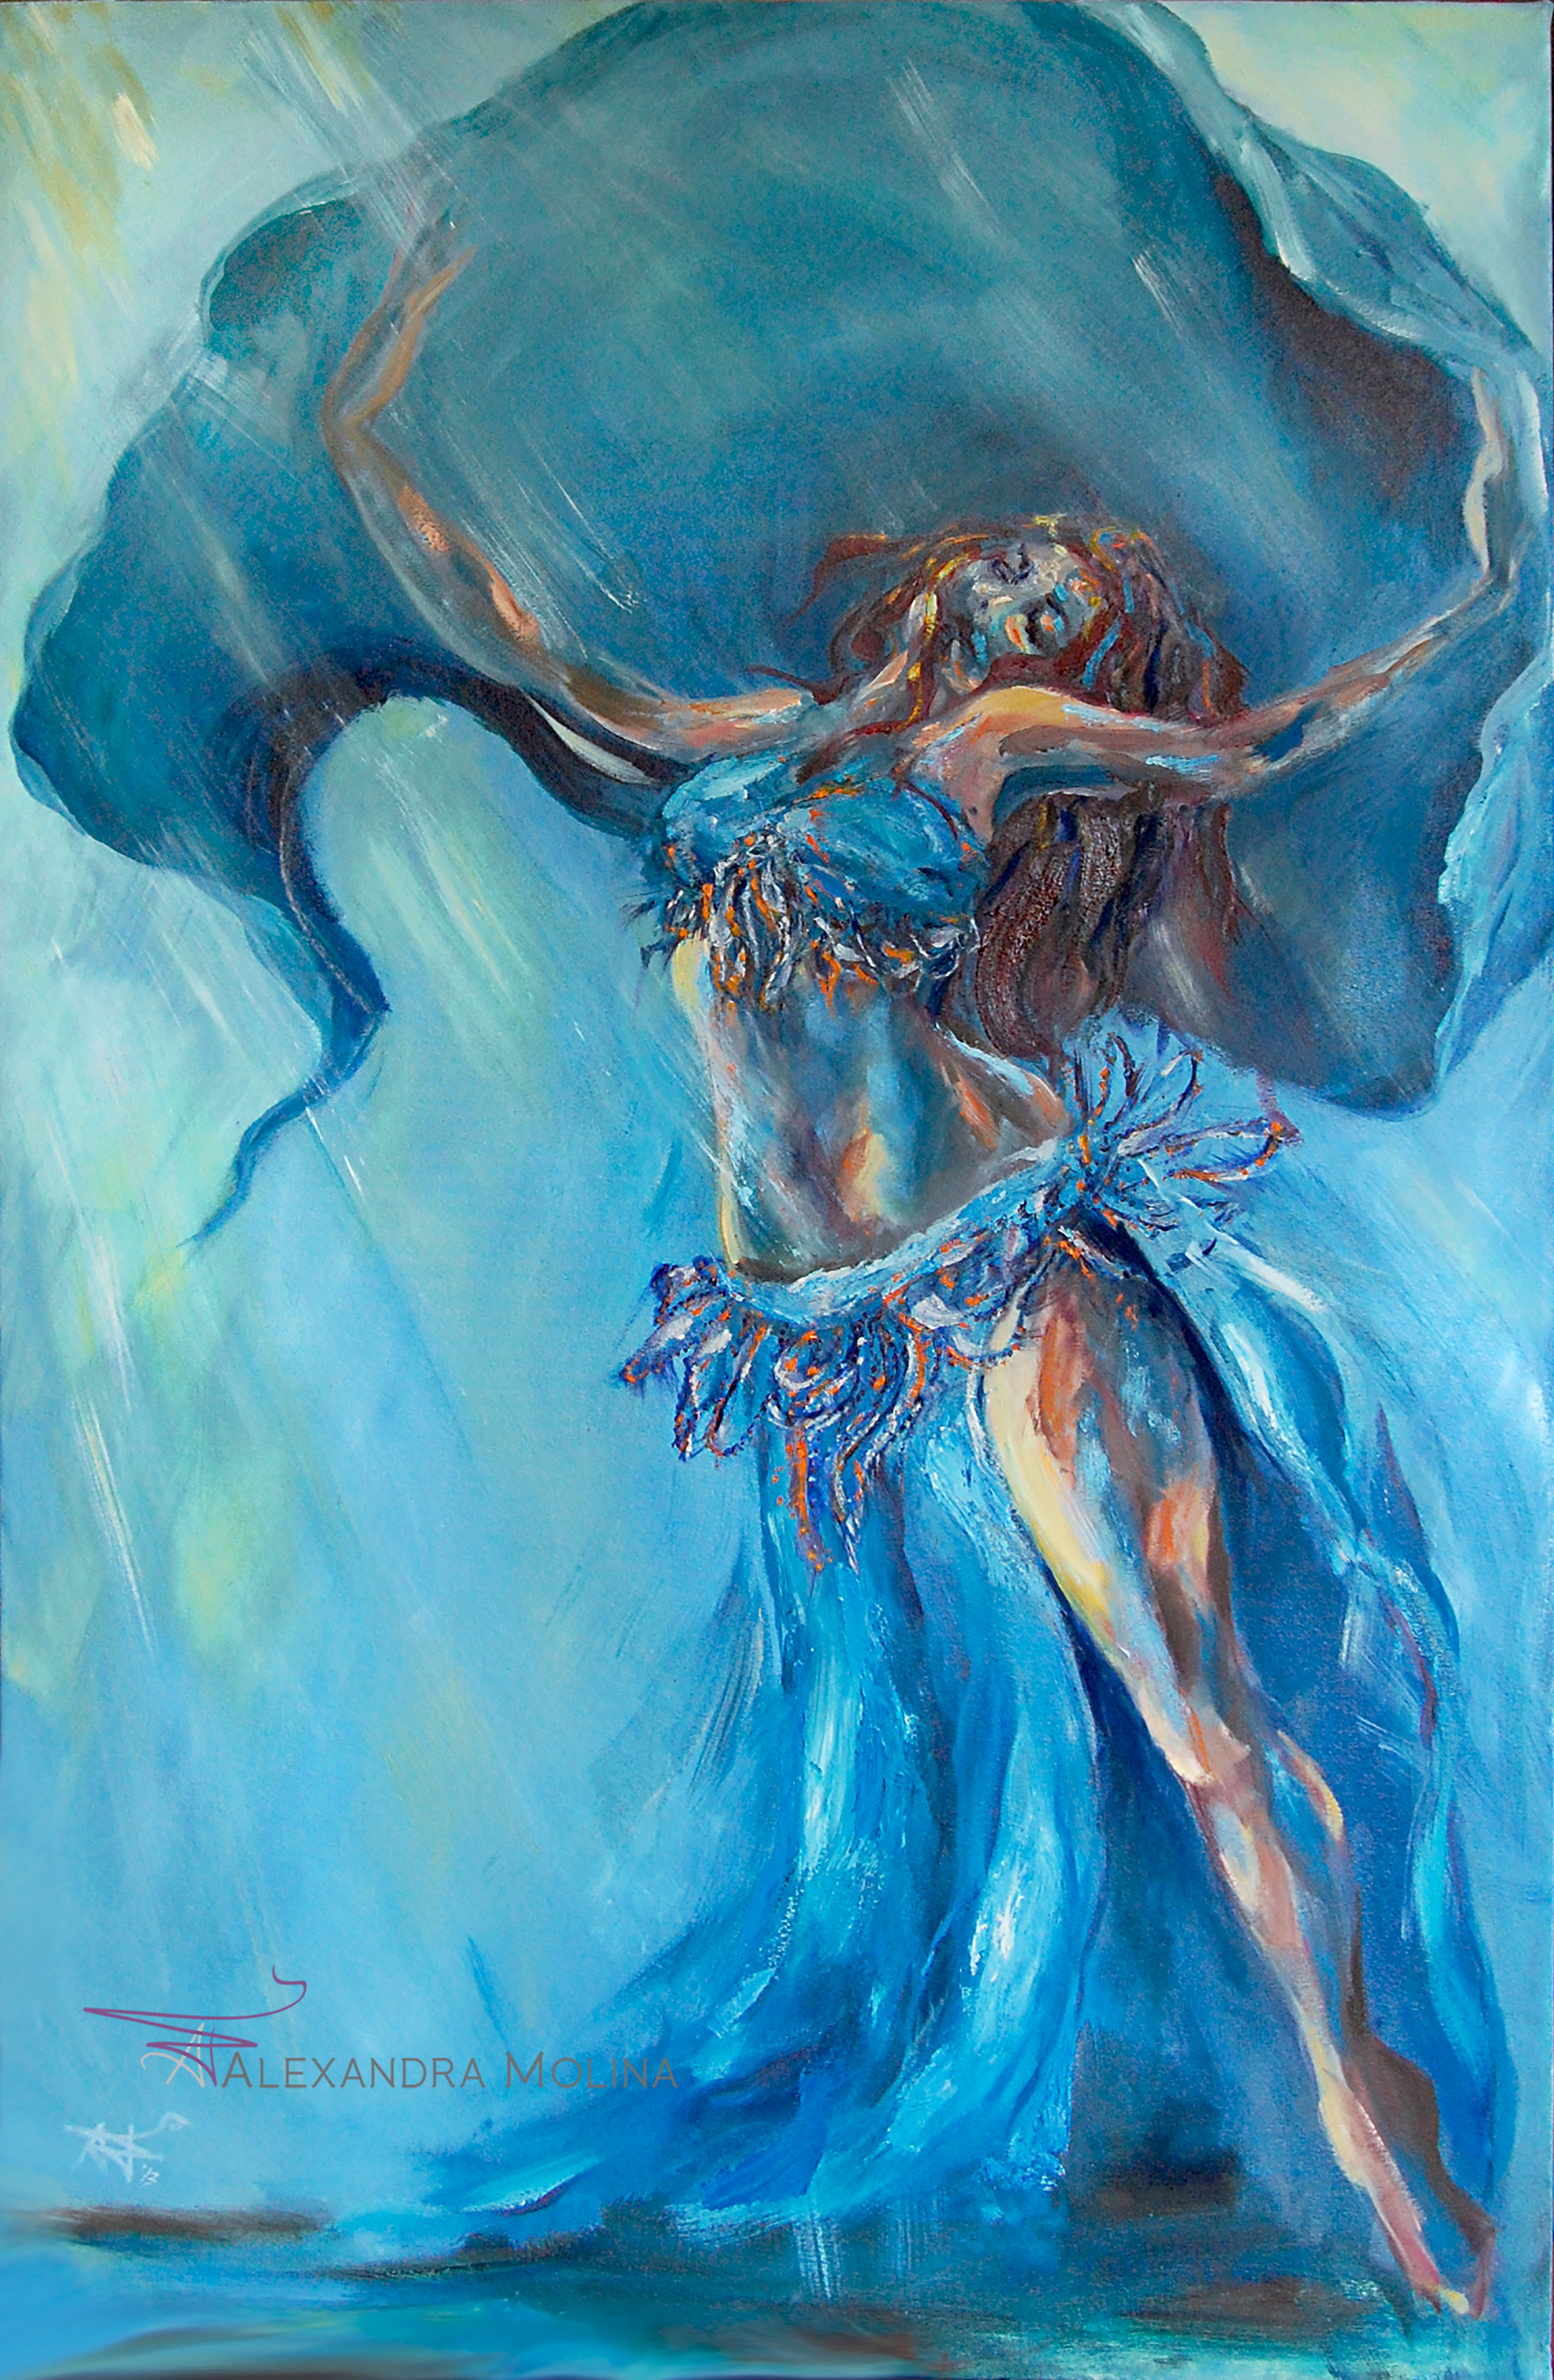 Moment of Bliss,  2013   Oil on canvas  Sold - Commission